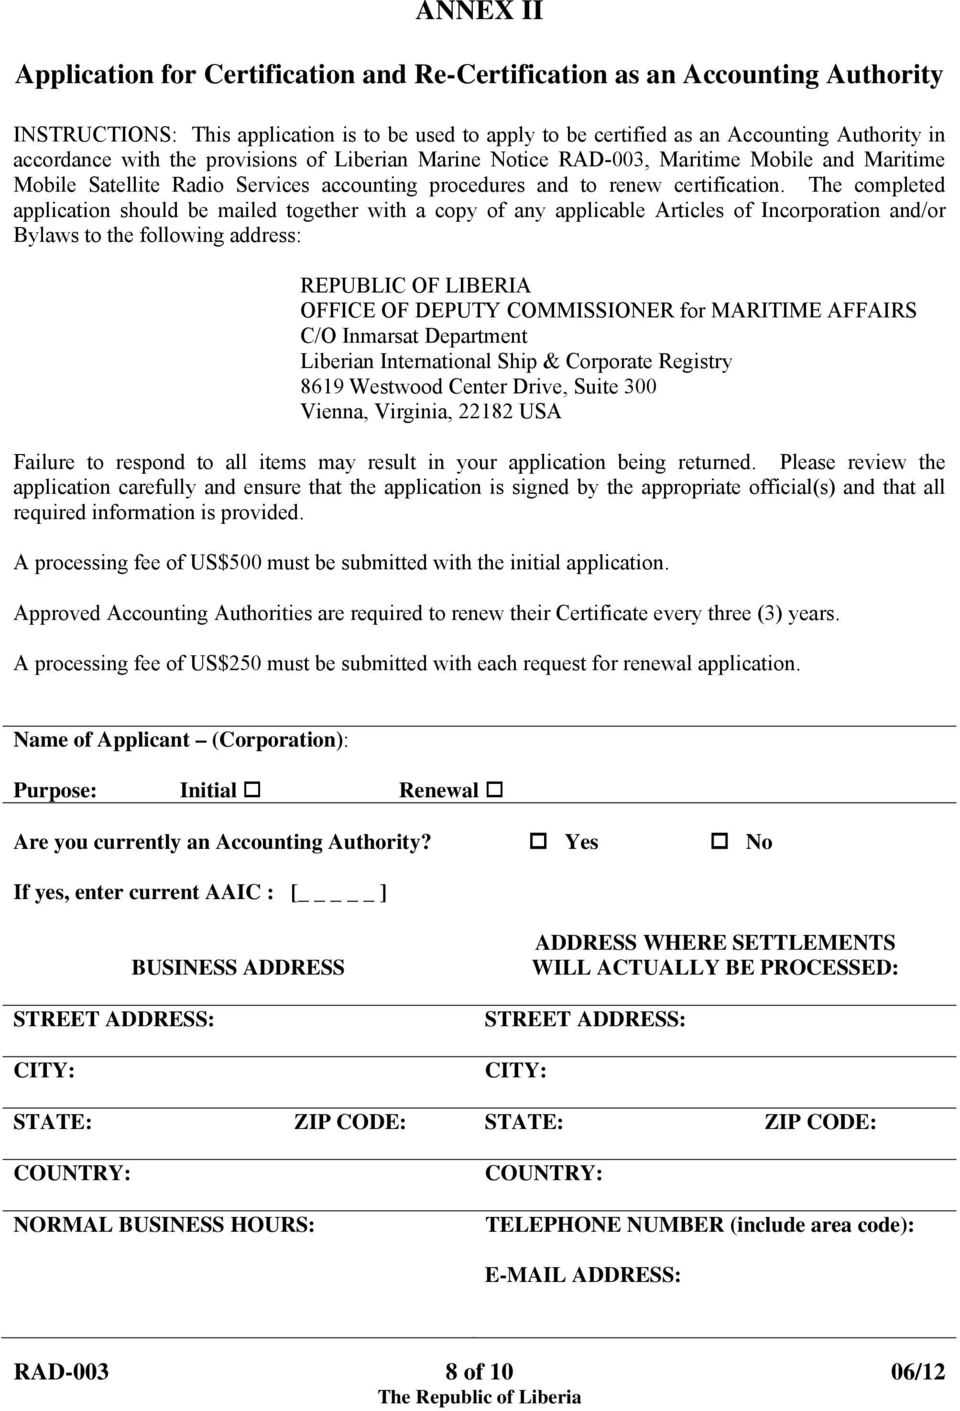 The completed application should be mailed together with a copy of any applicable Articles of Incorporation and/or Bylaws to the following address: REPUBLIC OF LIBERIA OFFICE OF DEPUTY COMMISSIONER